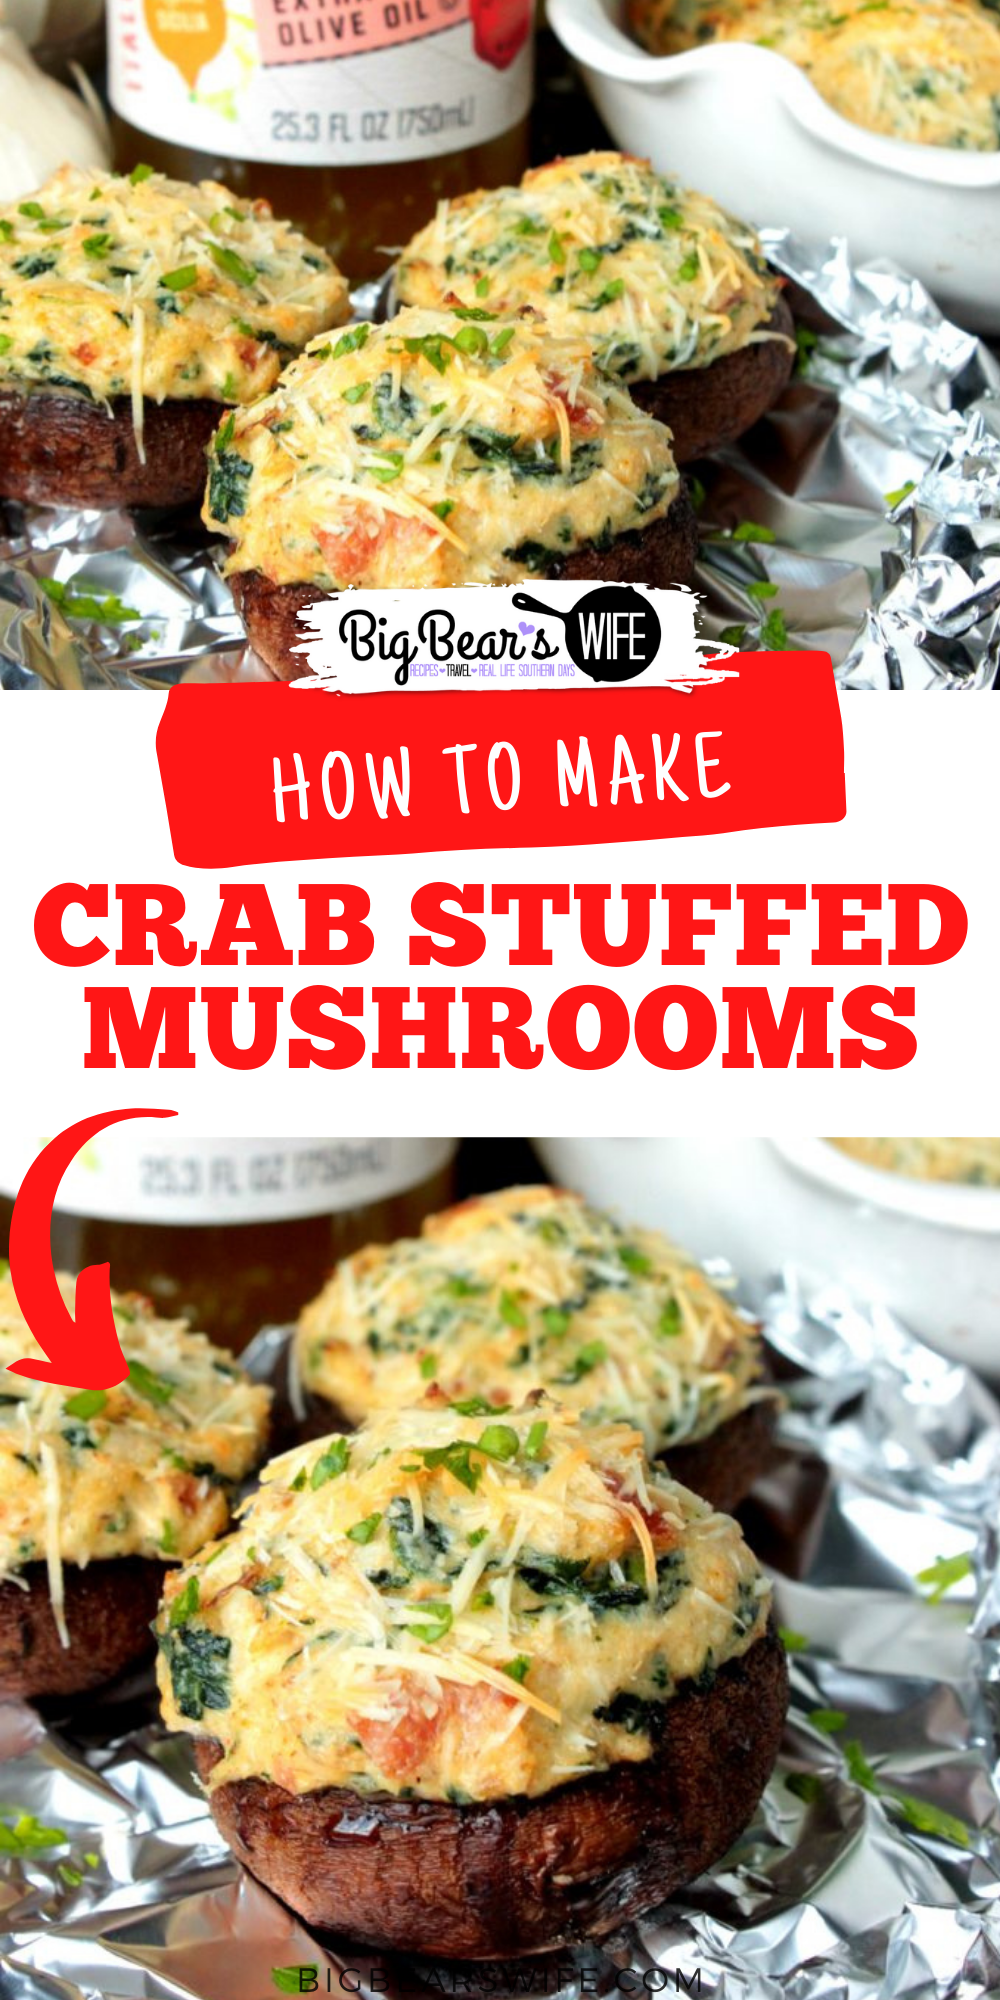 These Crab Stuffed Mushrooms are filled with an easy cream cheese, crab and spinach filling! PS. there are NO breadcrumbs in this recipe!